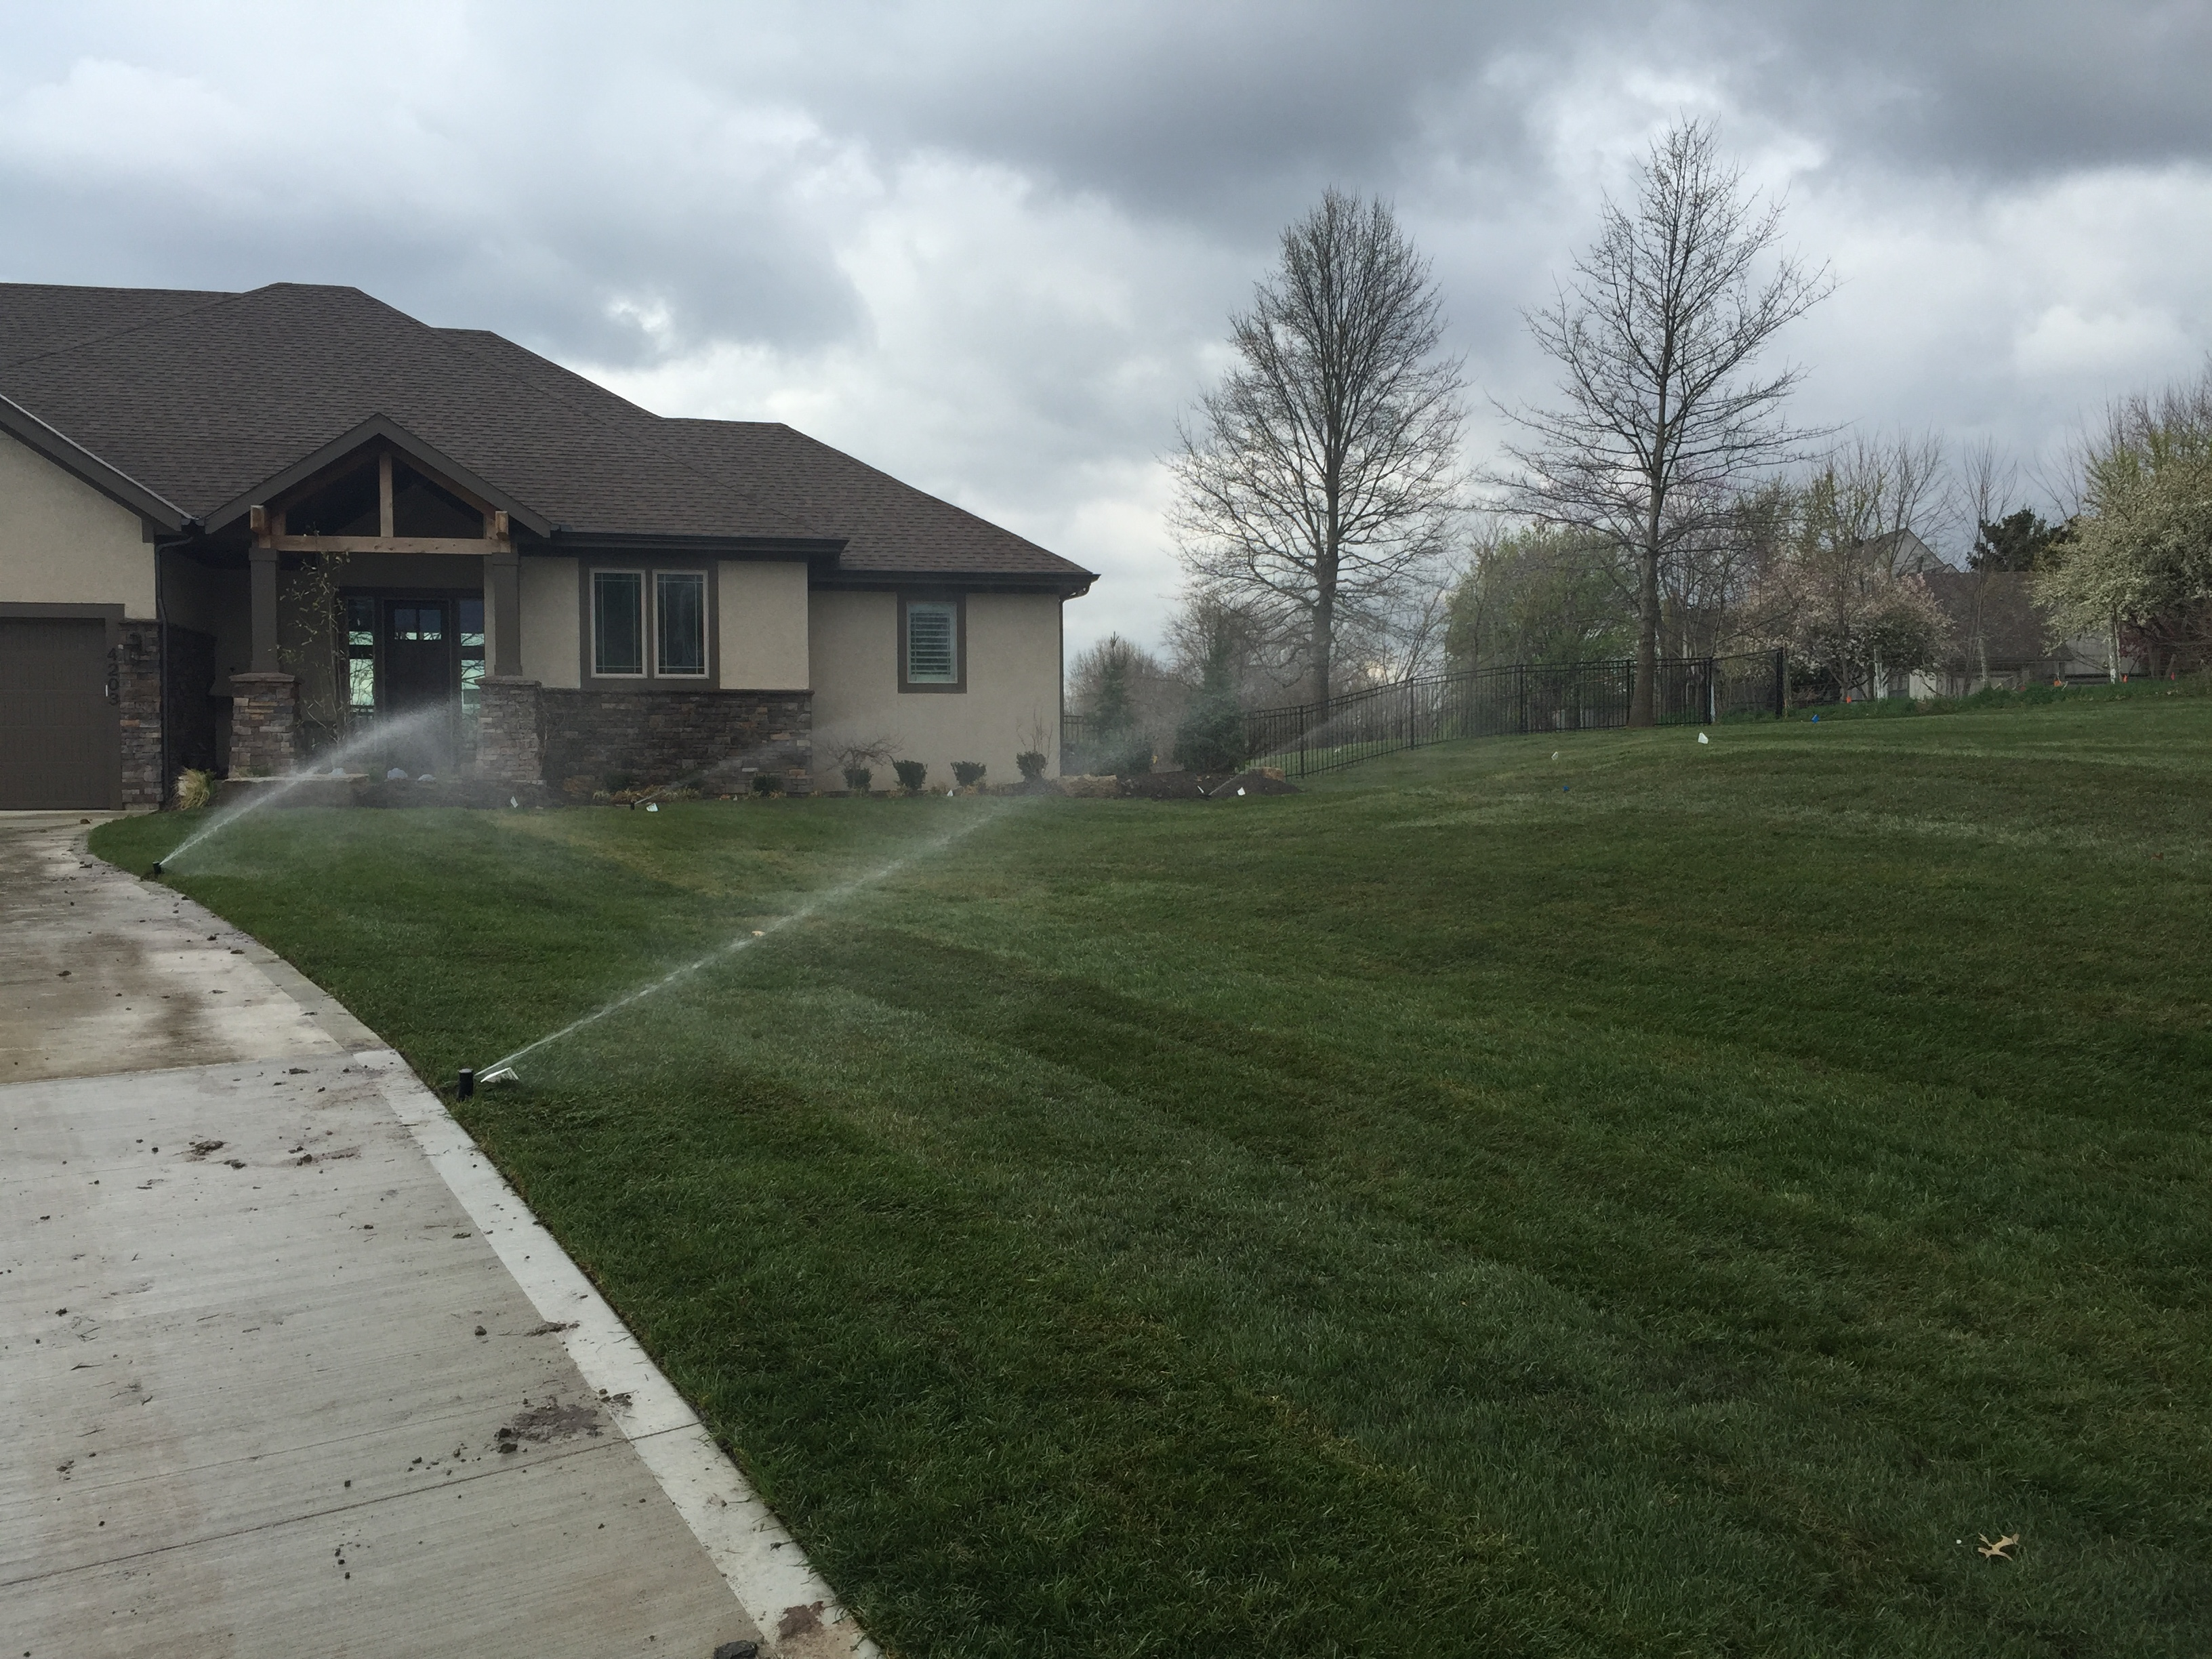 Hometown Lawn provides new irrigation installation, repair and service to Gardner, Olathe, Overland Park, Leawood, Stilwell, Lenexa, Shawnee, Roeland Park, Merriam, Mission, Mission Hills